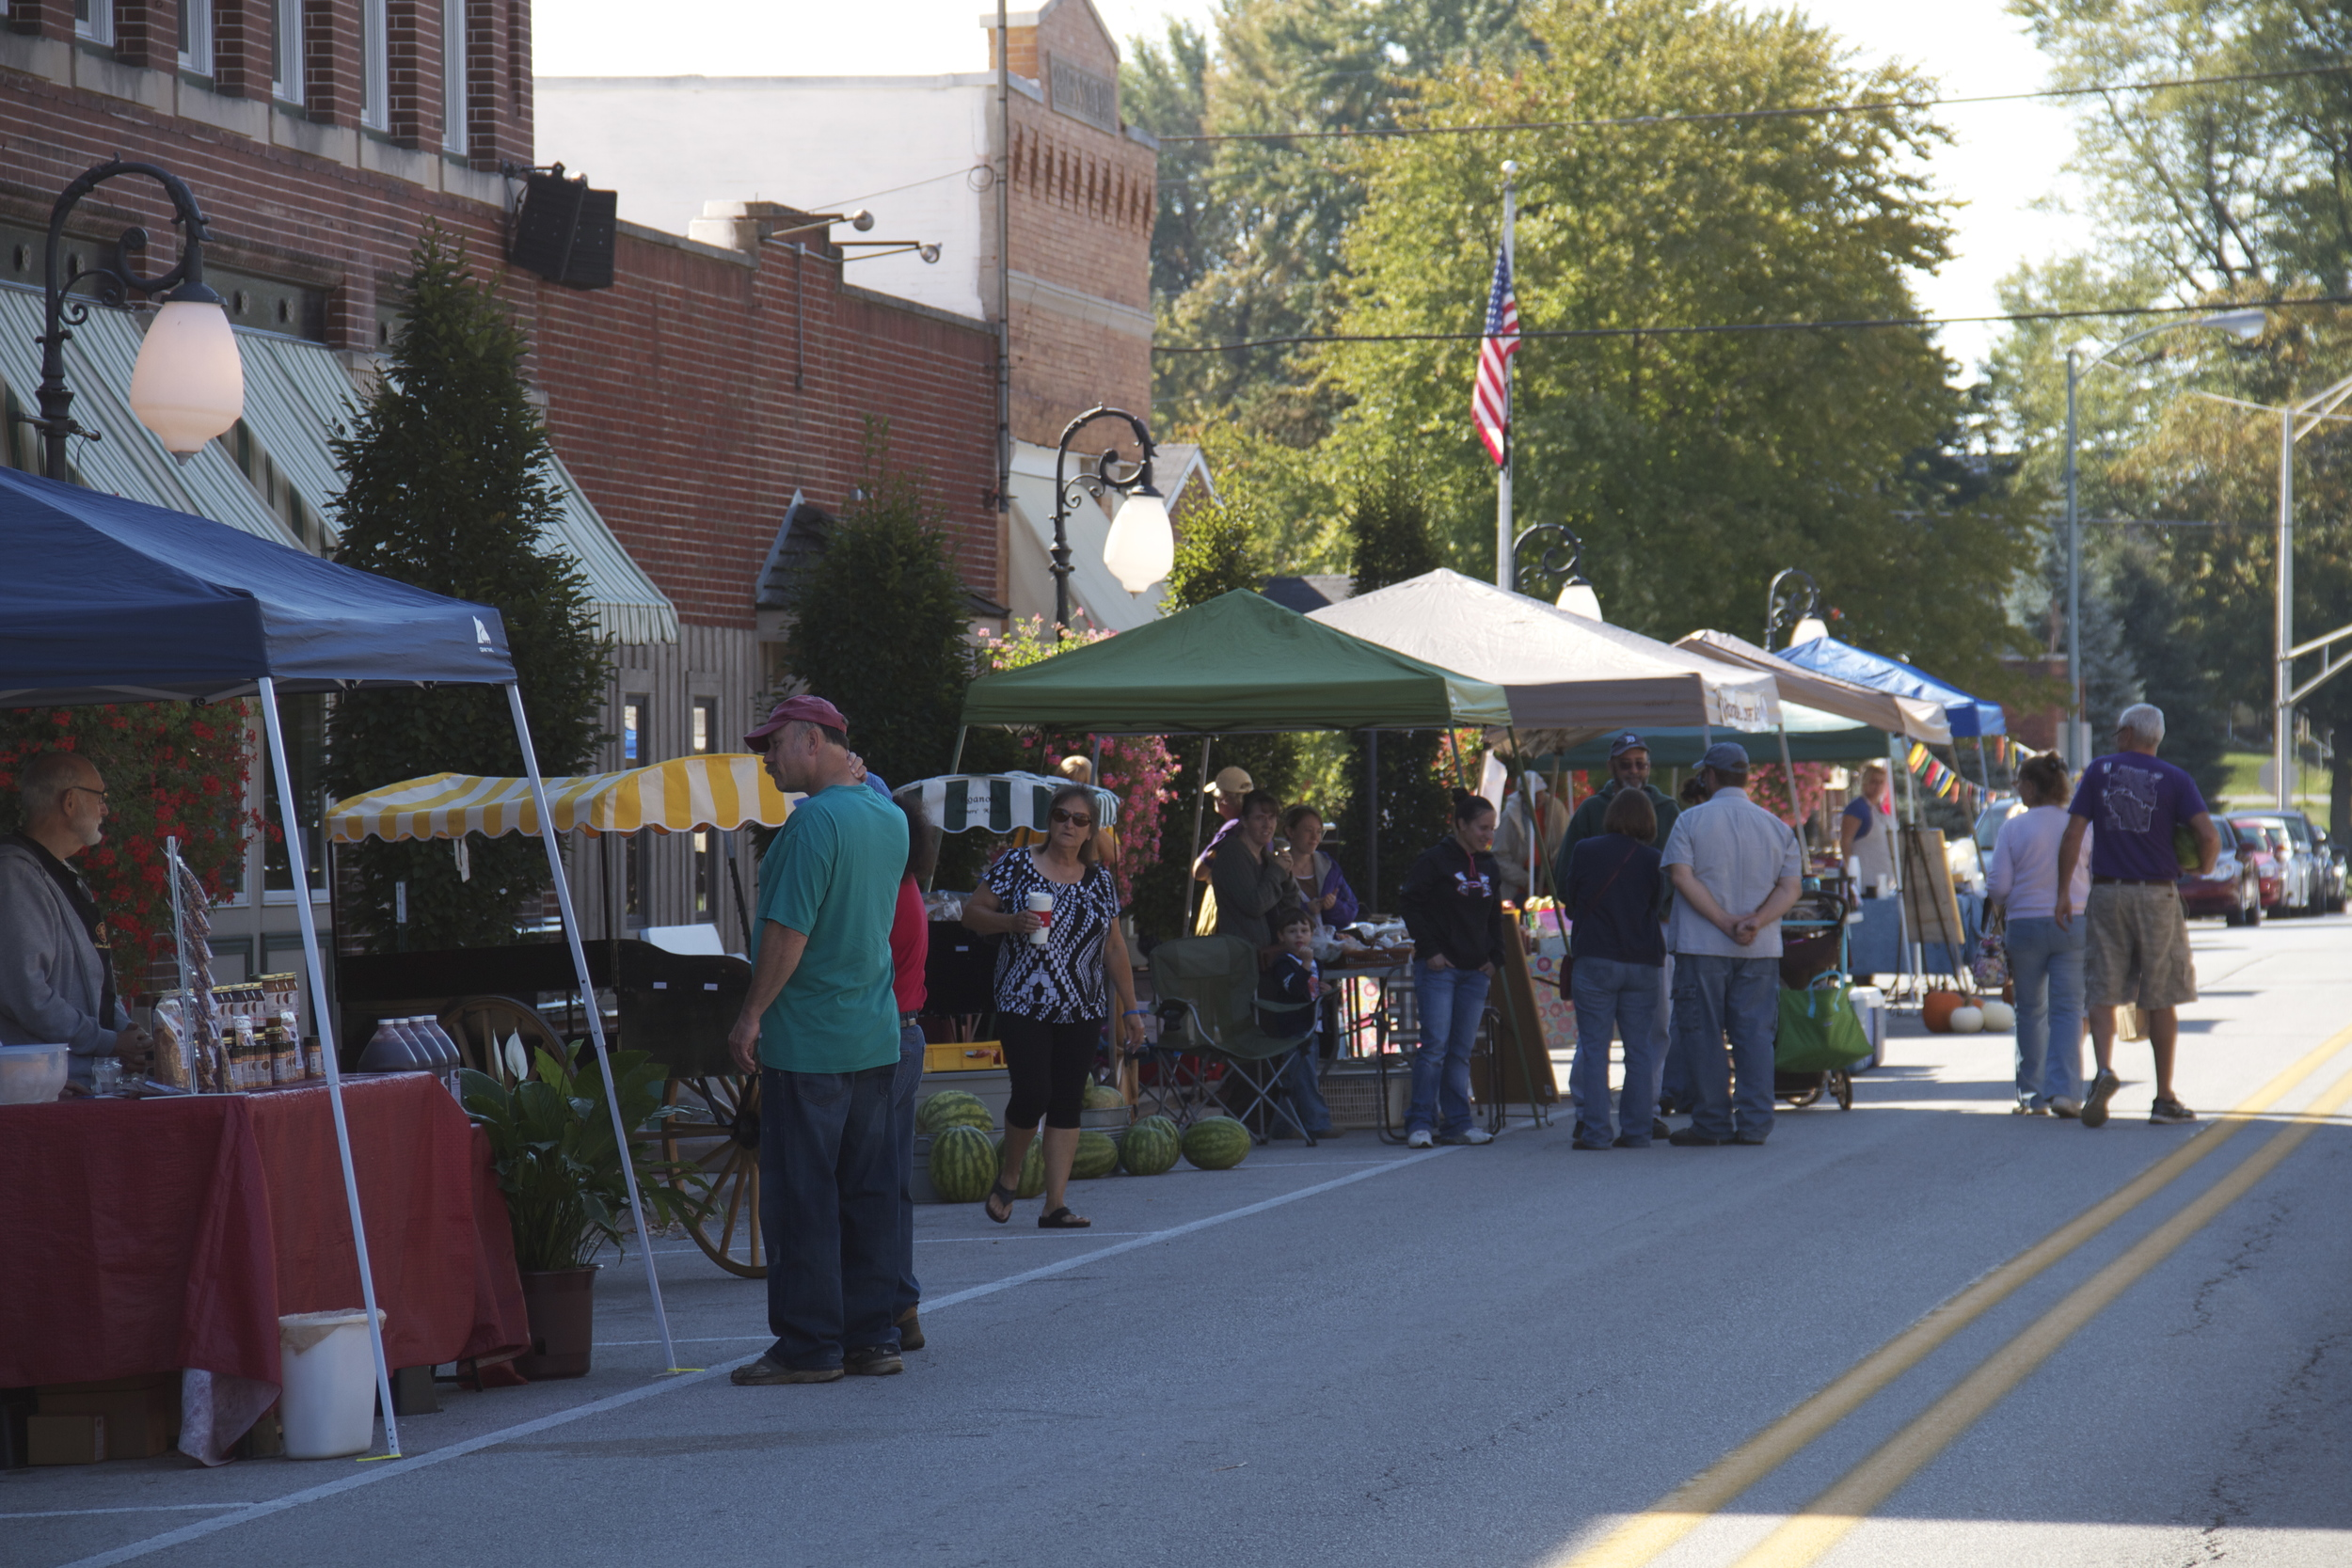 Fall Farmers Market on Main Street. The apple cider is amazing and the baked goods tempting.